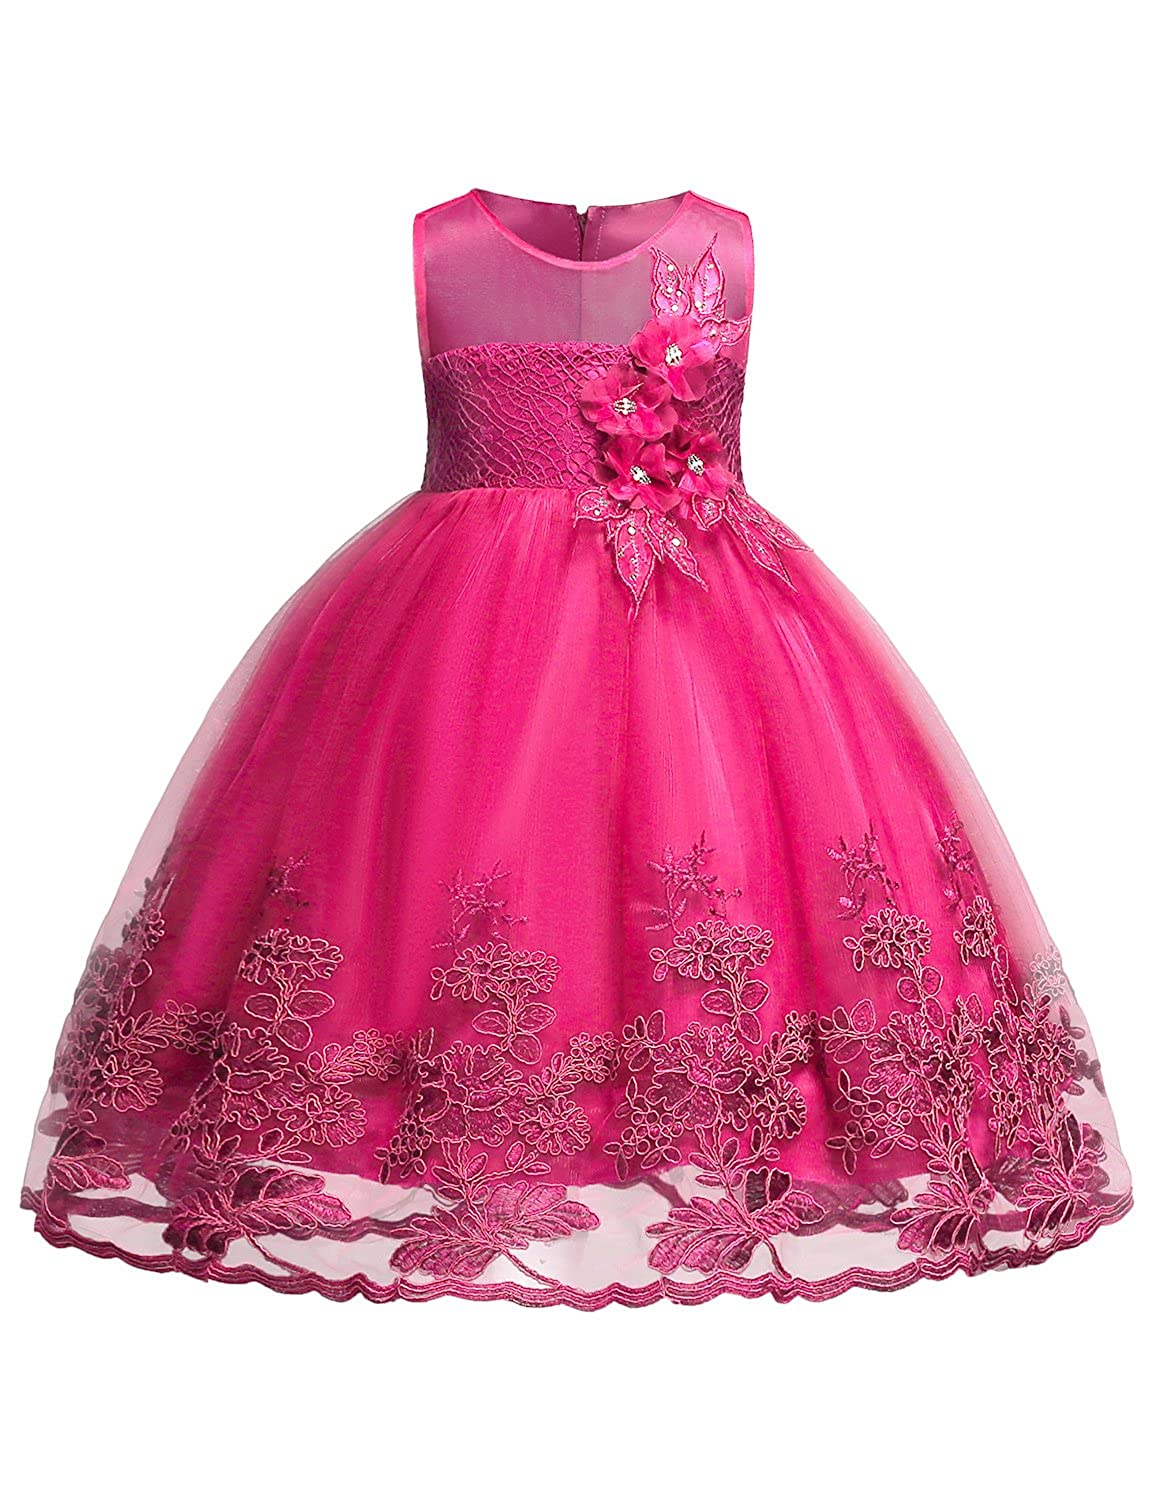 00e4feaa4e4e6 Knee Length, Girls Floral Printing Sleeveless Bowknot Party Dress, Children  Ruffles Prom Dresses, Ball Gown Dress, give your child a attractive looking.